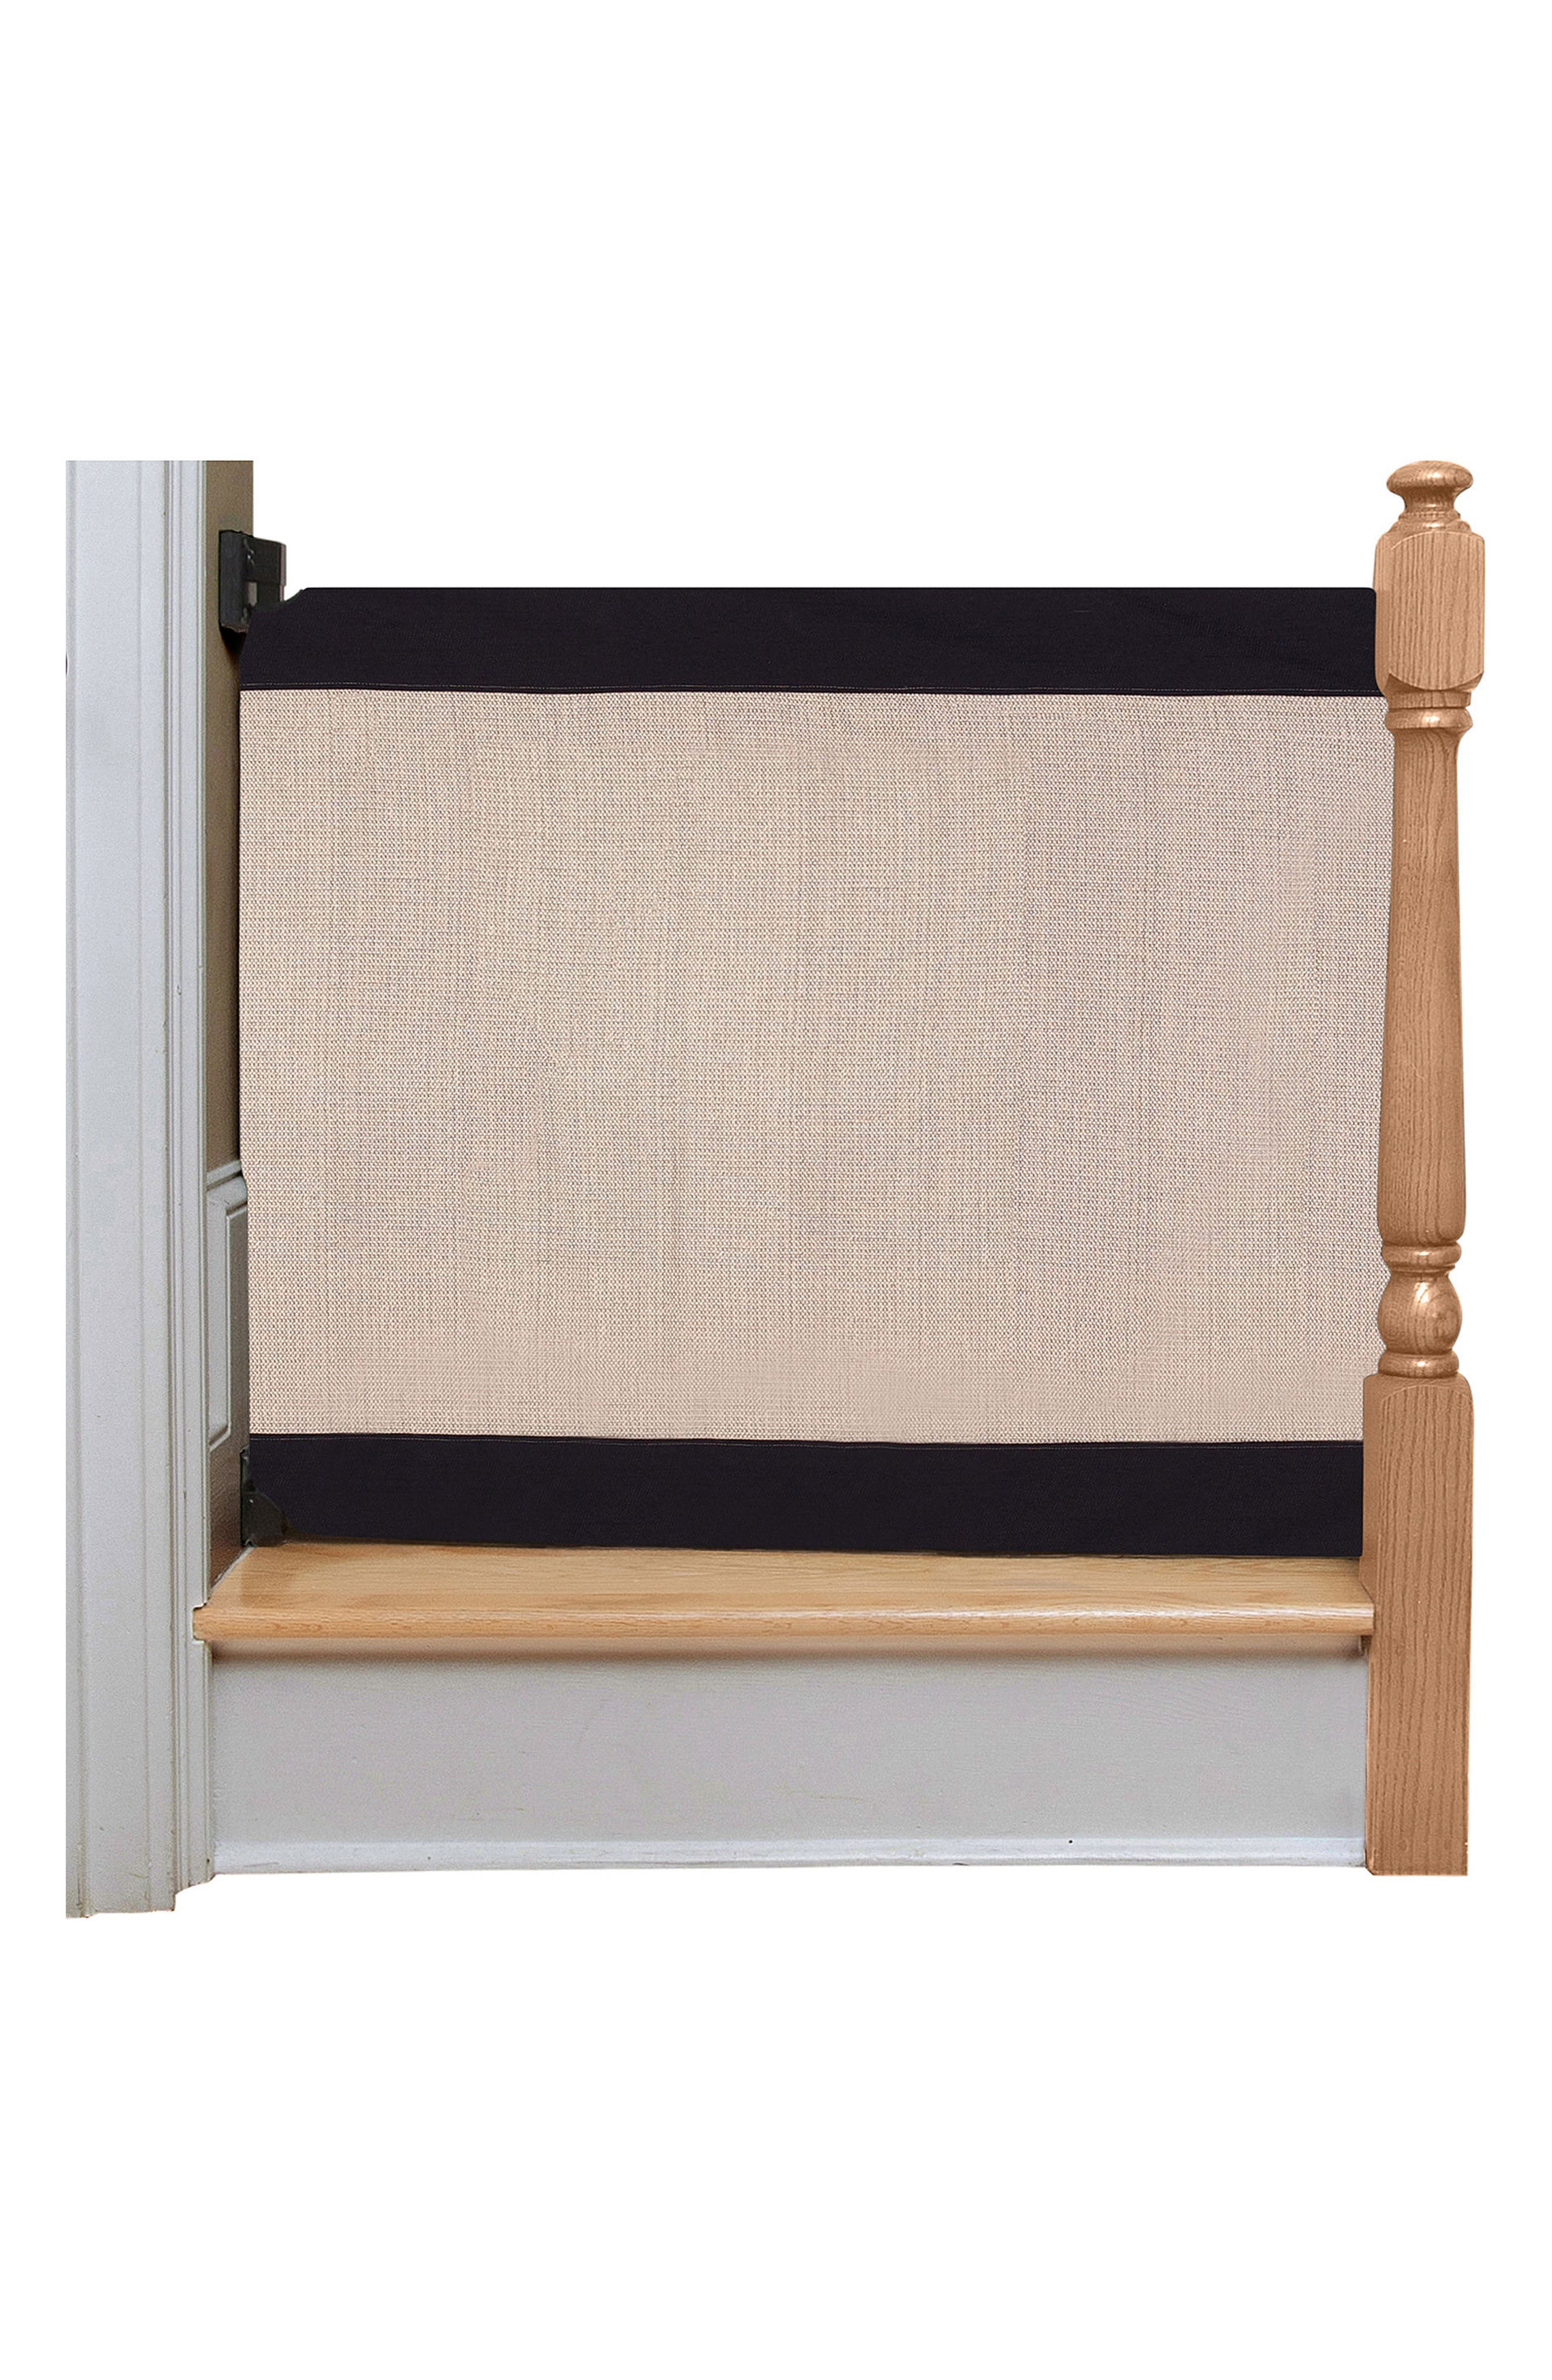 Wall to Banister Regular Width Safety Gate,                             Main thumbnail 1, color,                             Black And Tan